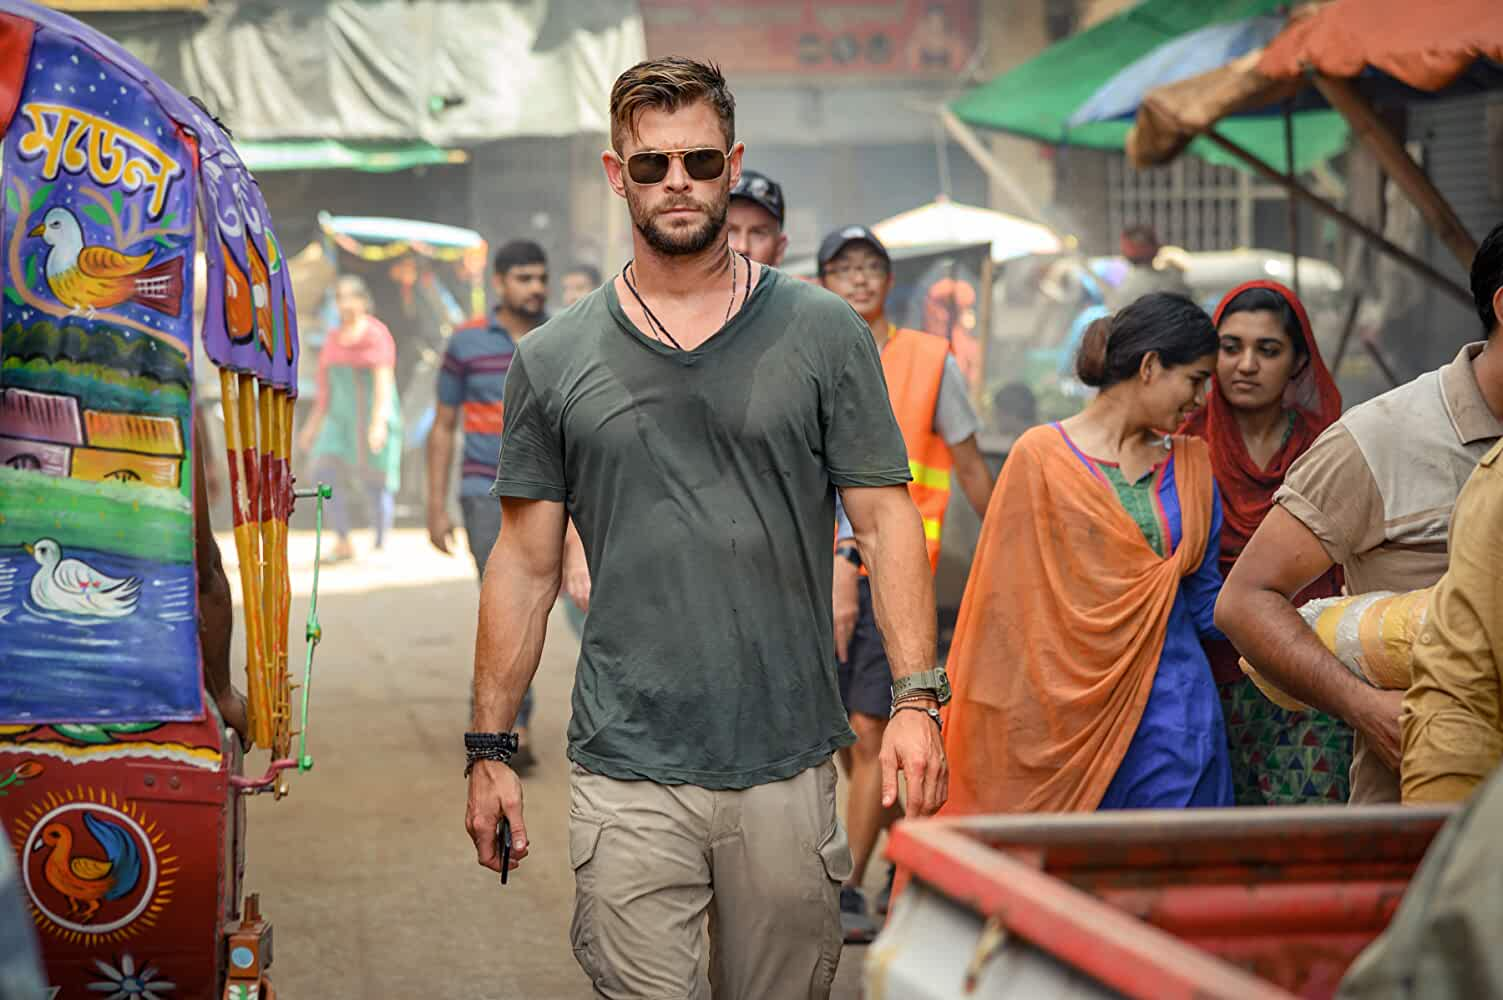 Netflix S Extraction Download Full Hd Free And Watch Online Starred By Chris Hemsworth Leaked Online By Tamilrockers Filmyzilla And Other Torrent Websites Pehal News